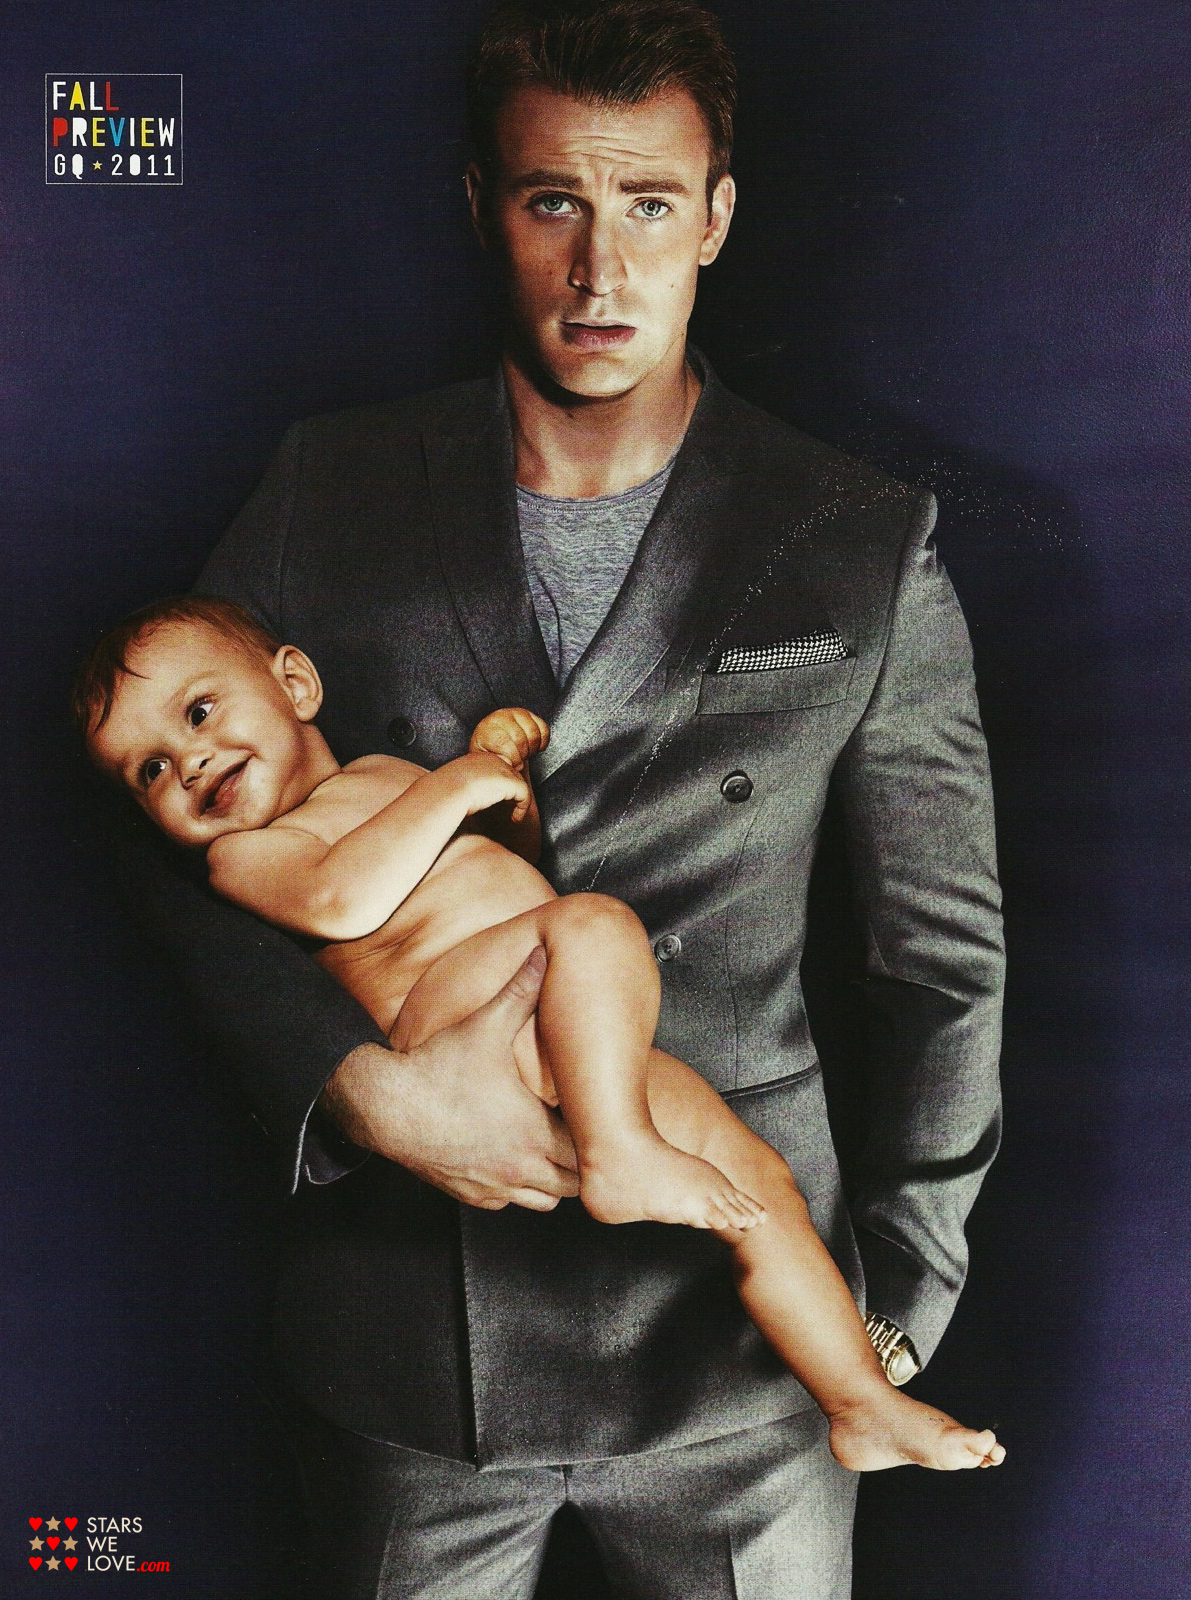 Chris Evans Chris Evans poses with a baby for the GQ magazine photoshoot. (chris_evans014, 1191 x 1600 pixels, 900 kB)